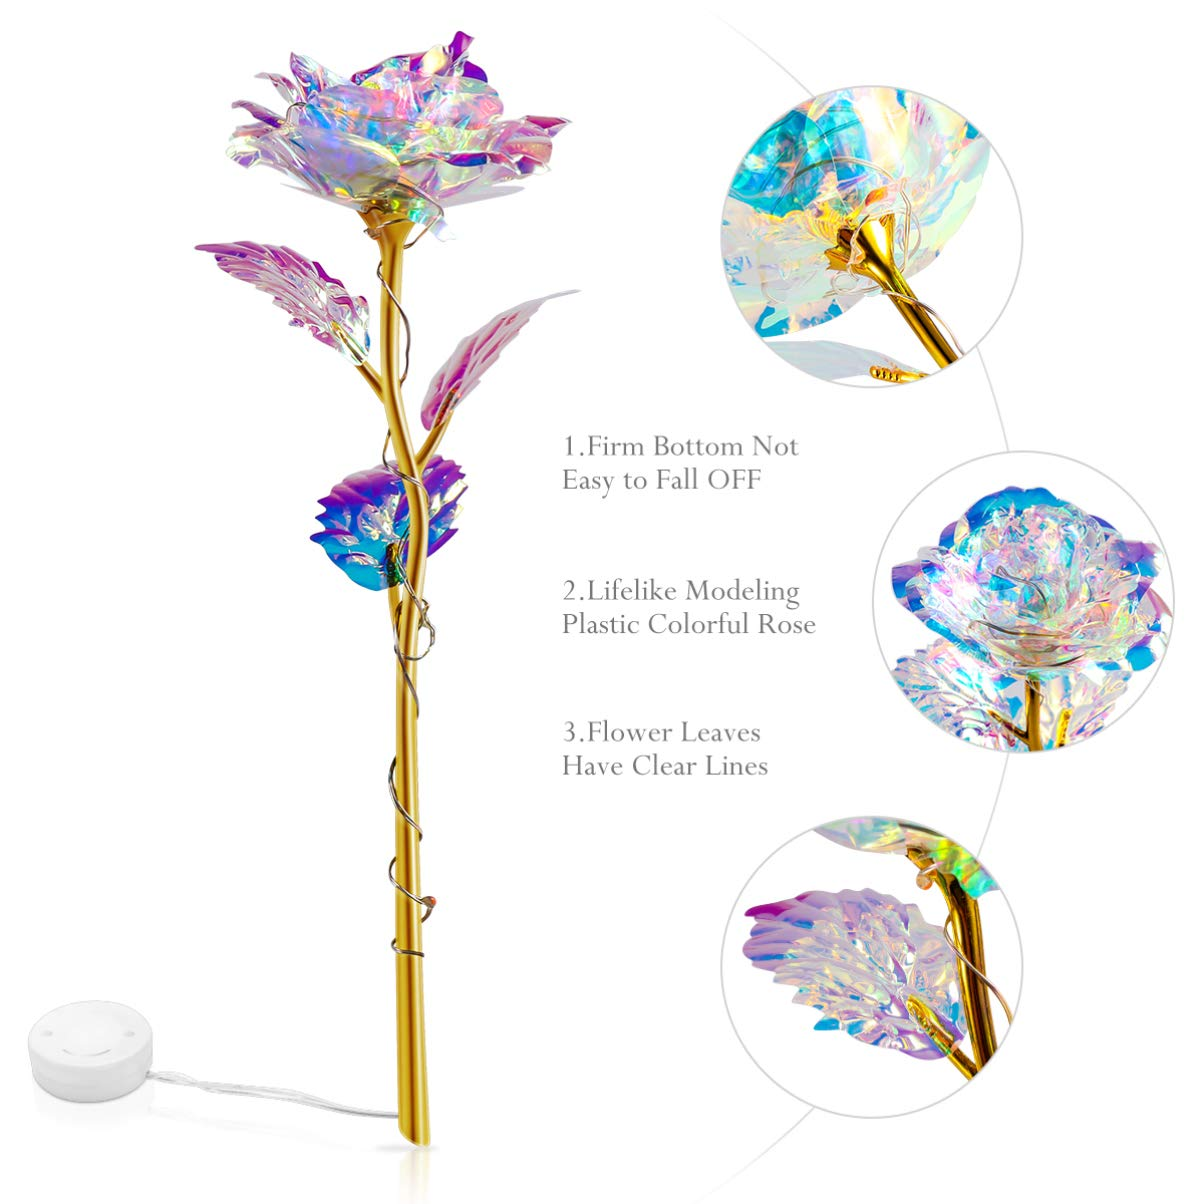 Best Gifts for Wife Girl Friend OSALADI Colorful Luminous Rose Artificial Light Gifts Mothers Day Thanksgiving Valentines Day Girls Birthday Party